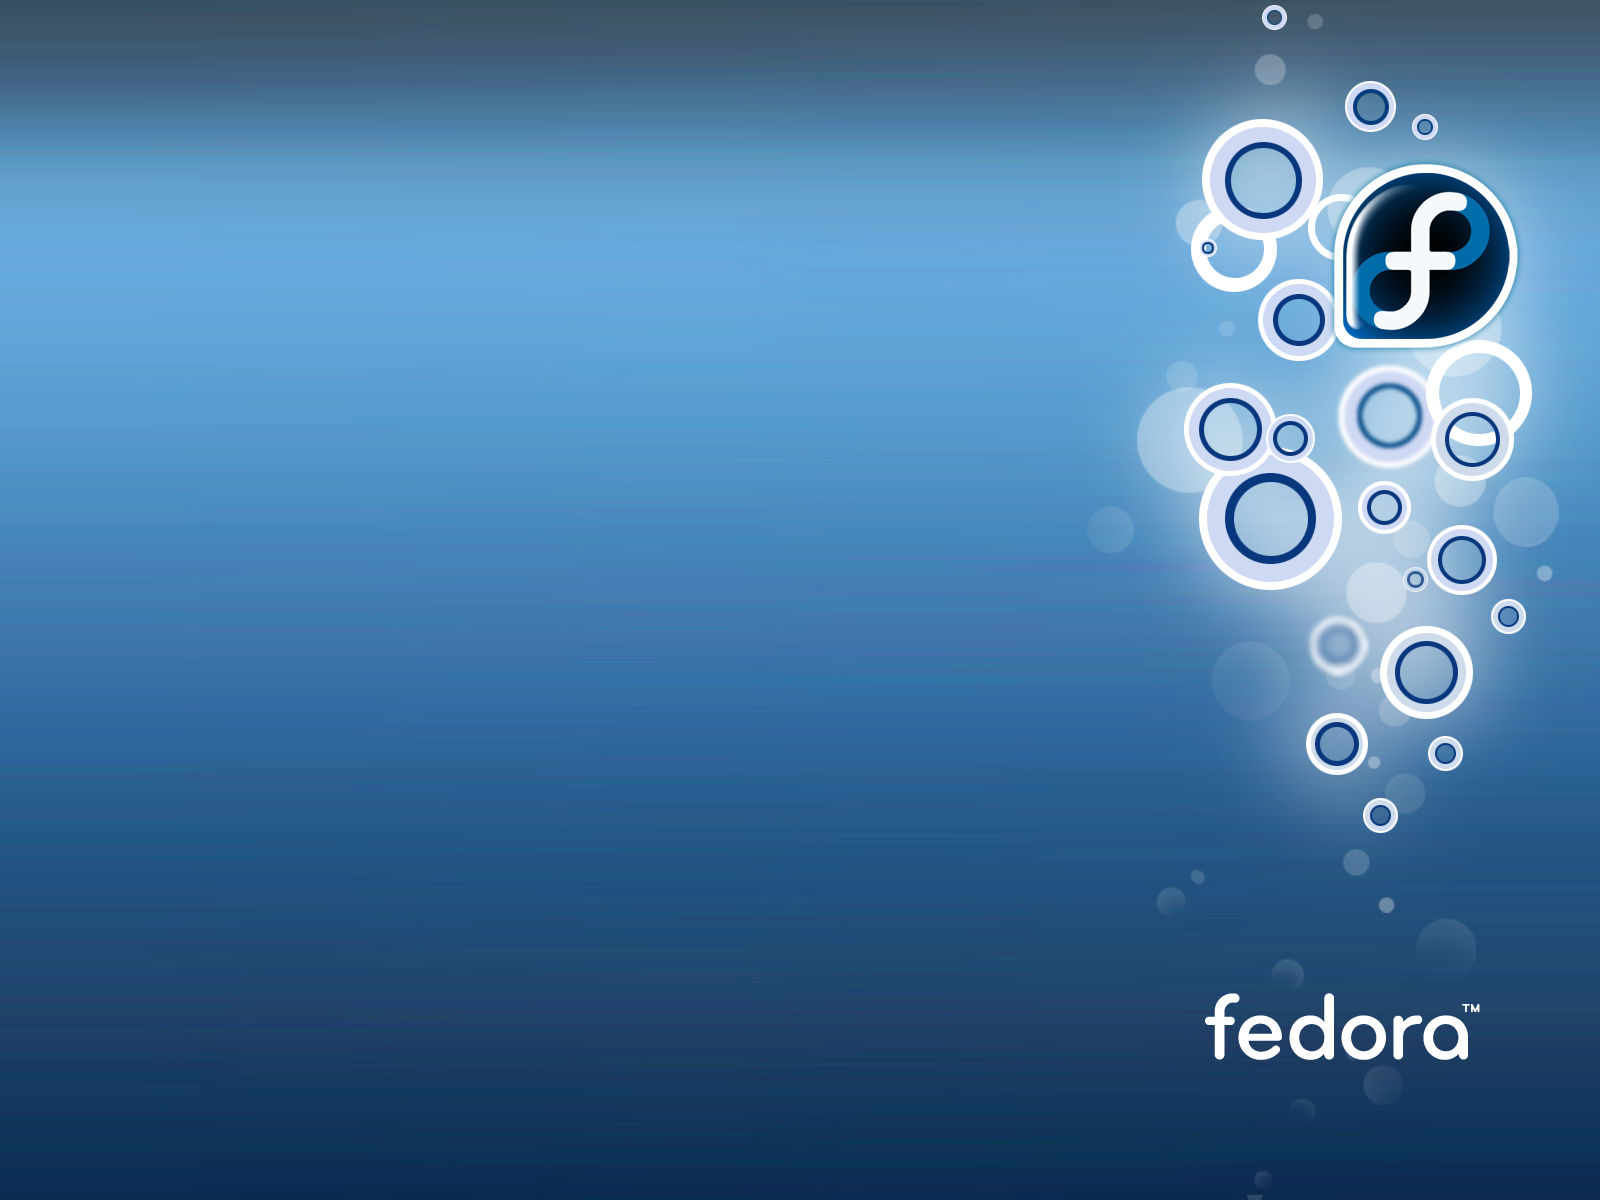 Fedora Wallpapers ID: YDK8989